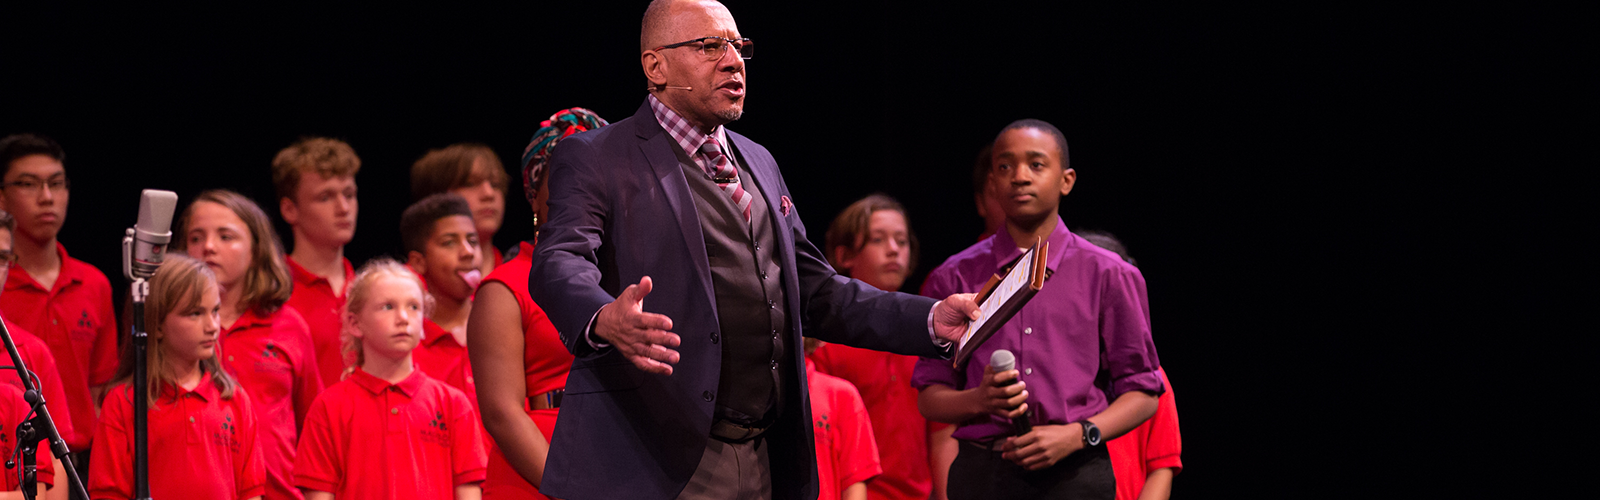 Host with children behind at the power of story event at the overture center